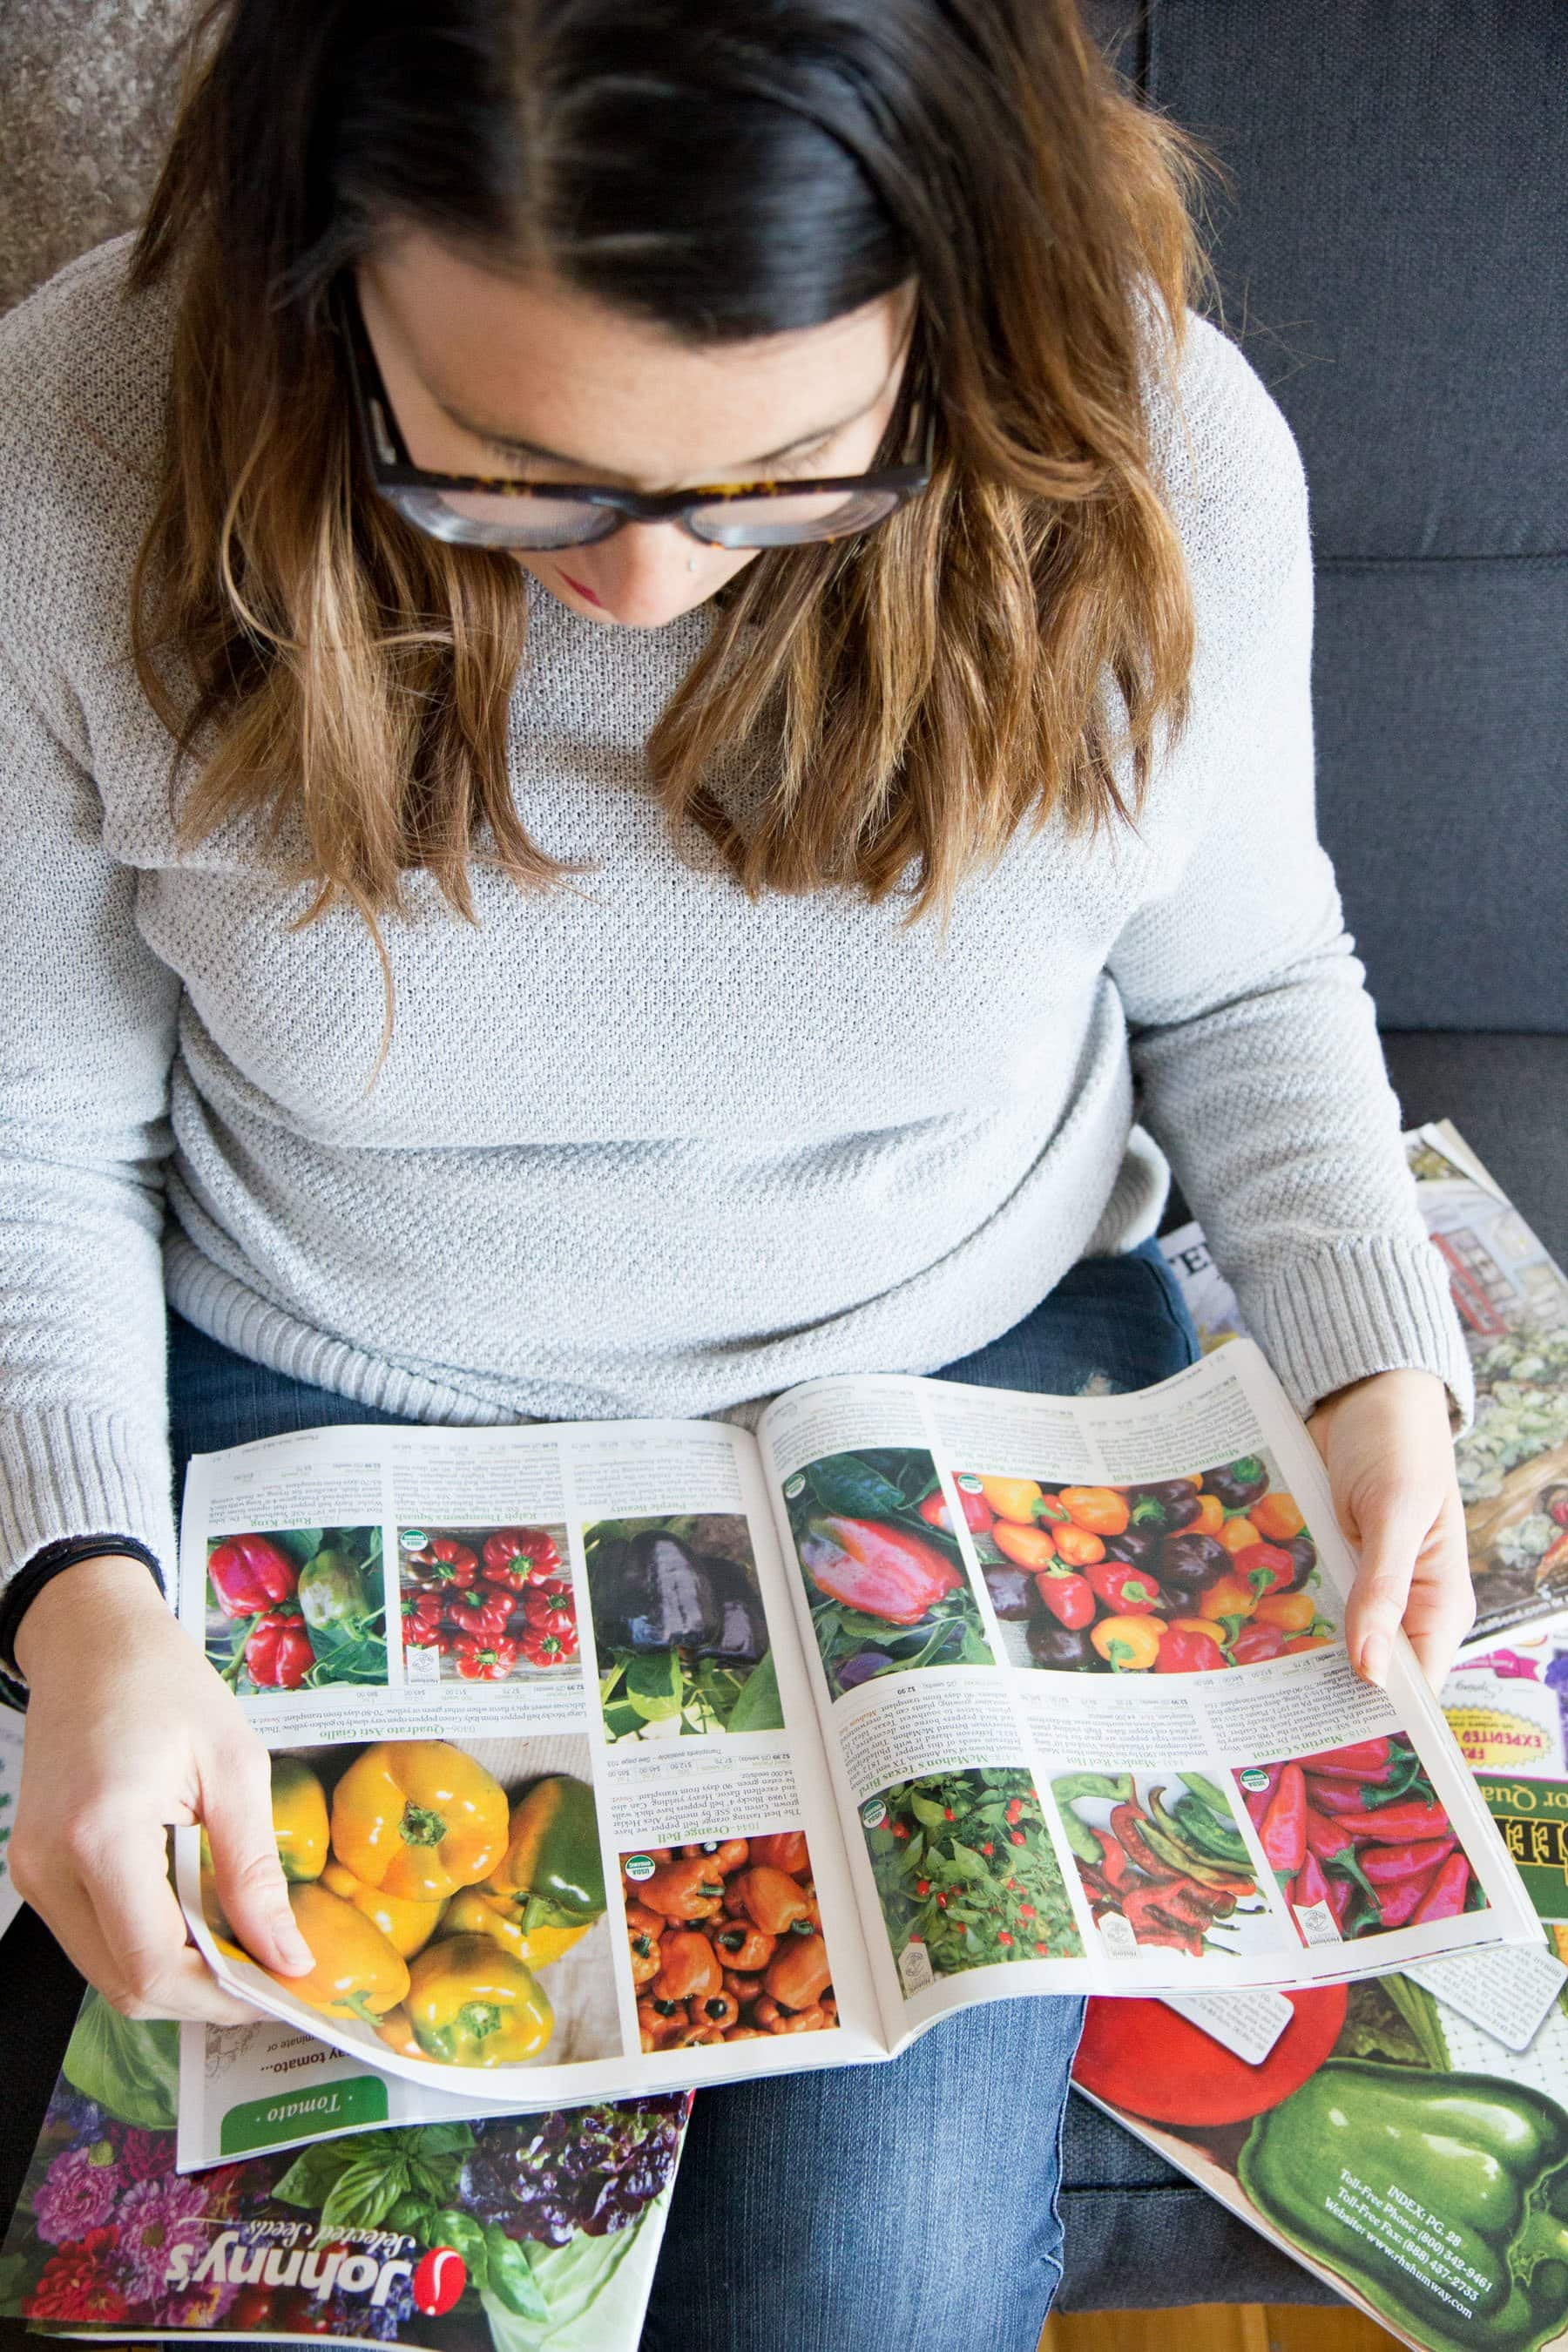 Woman sitting on couch looking through seed and gardening catalogs